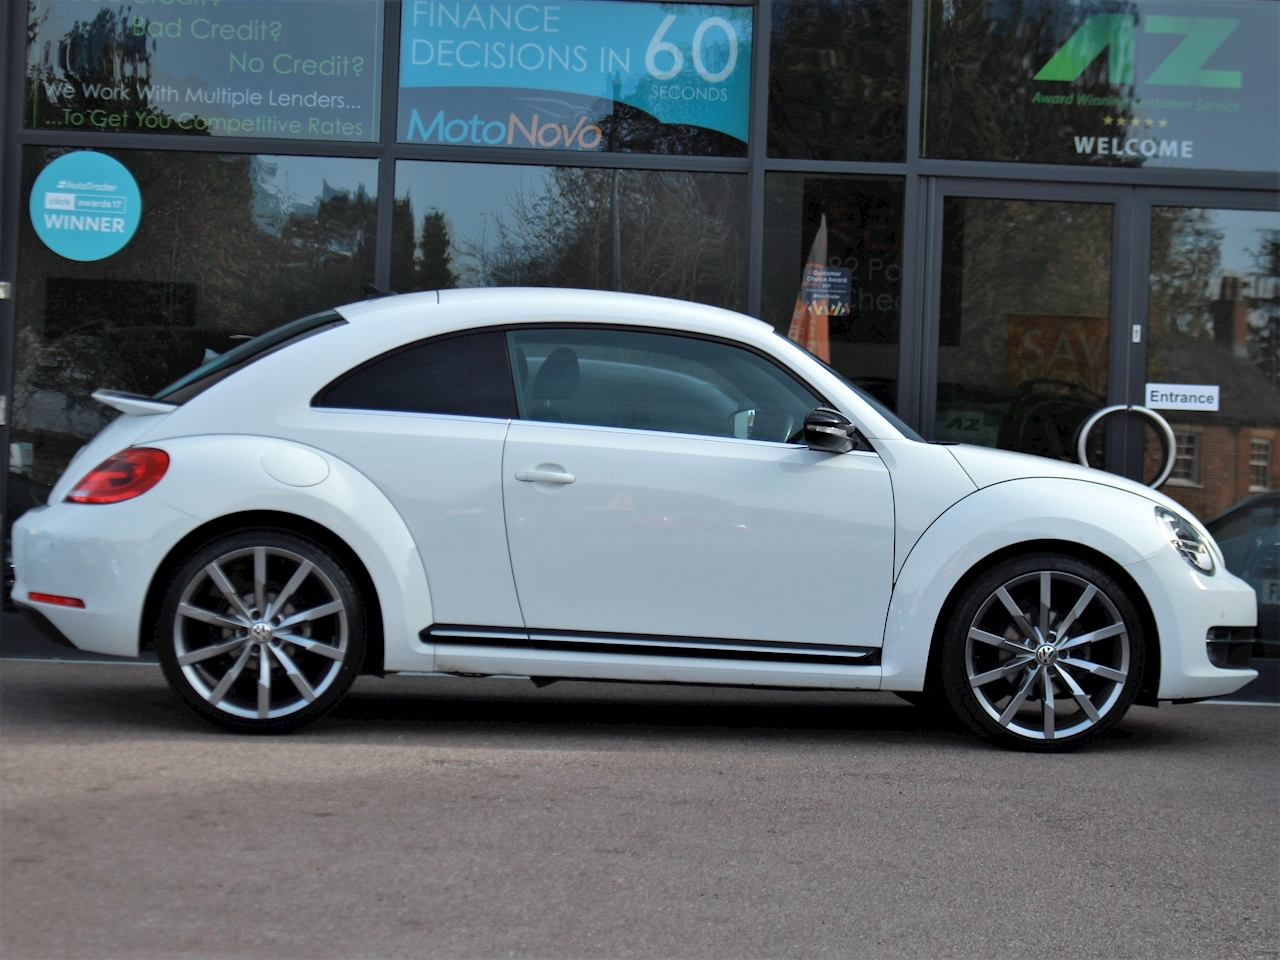 Volkswagen Beetle Sport Tdi Bluemotion Technology - Large 3